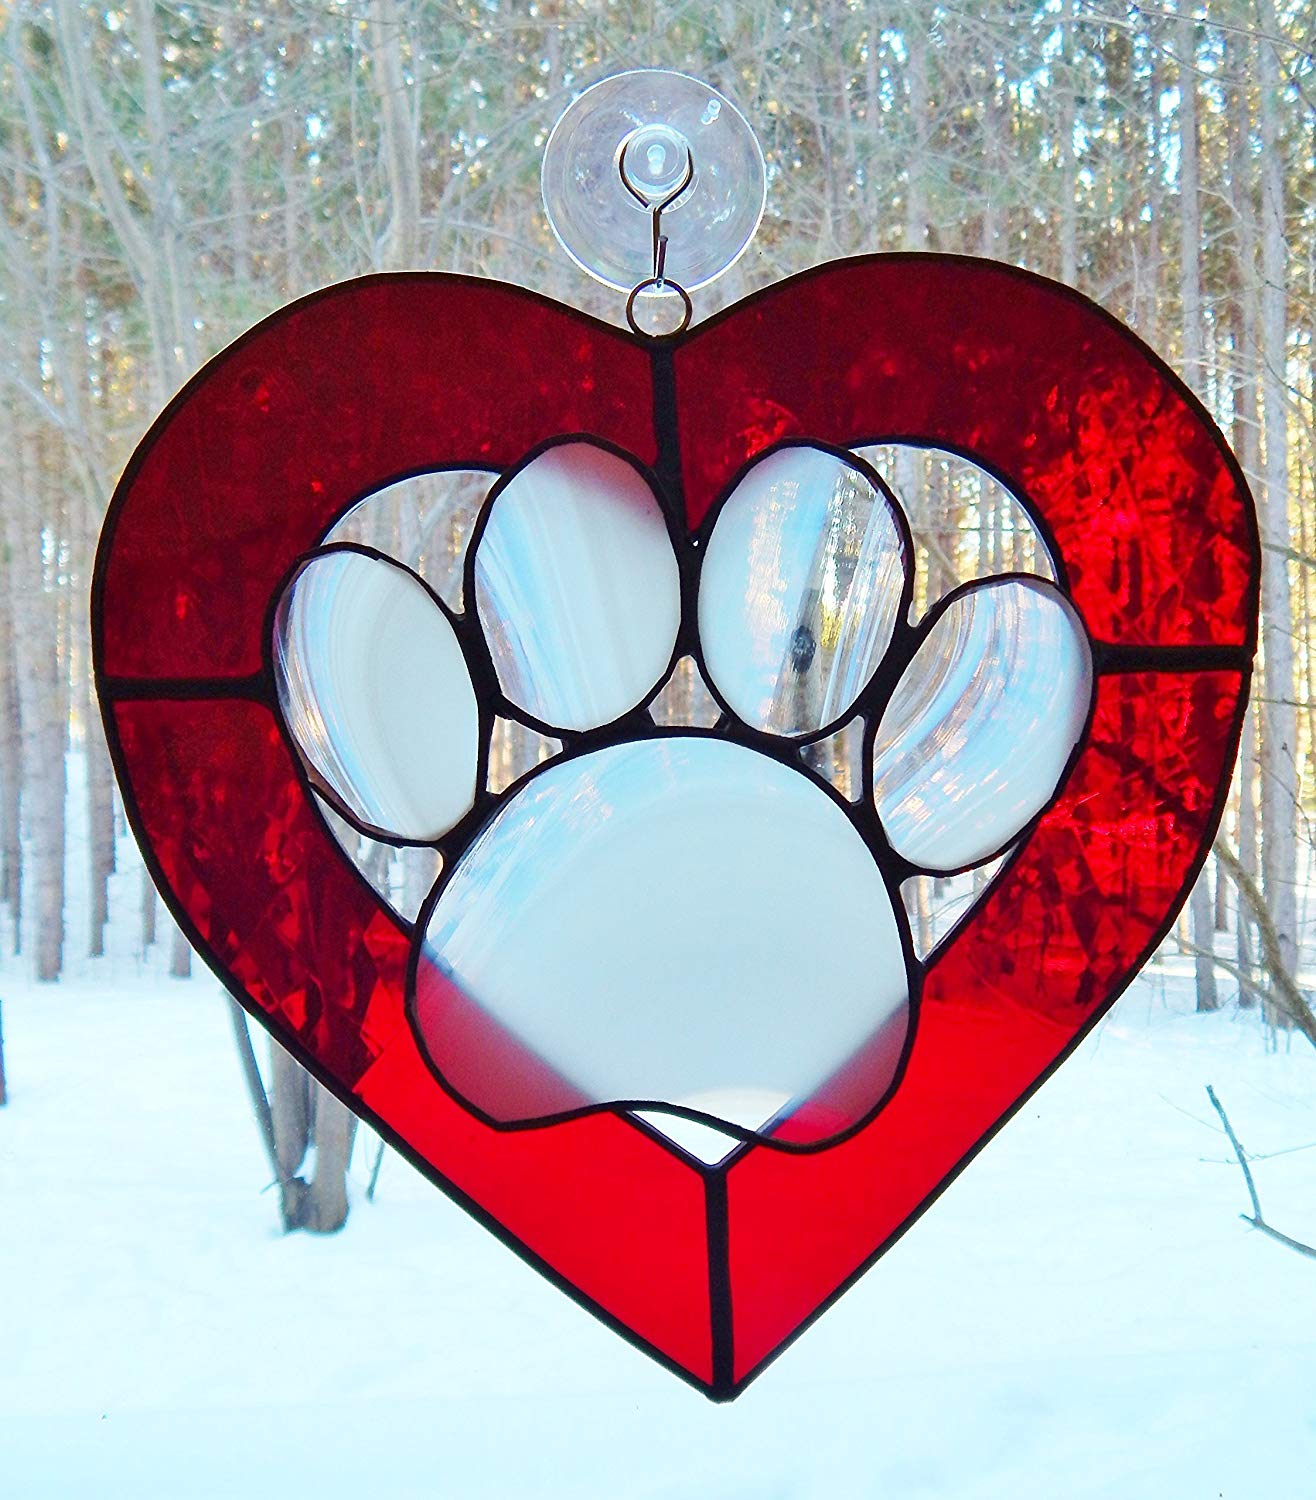 Paw print/Heart in Stained Glass - True Love Red and Snowy White